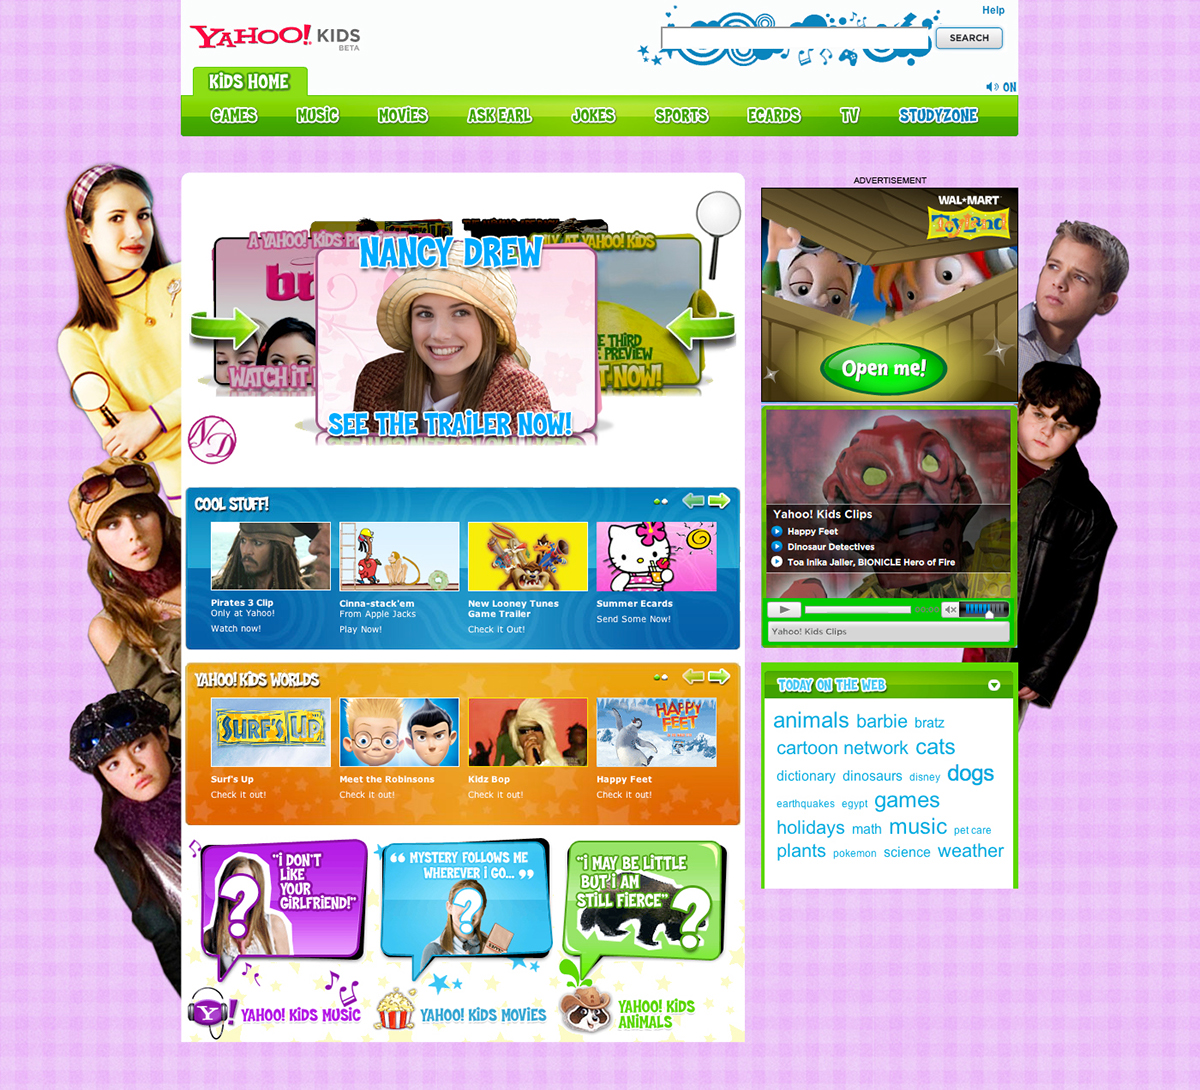 3d carousel panel to promote bratz movie on yahoo kids home page - Kids Home Pages